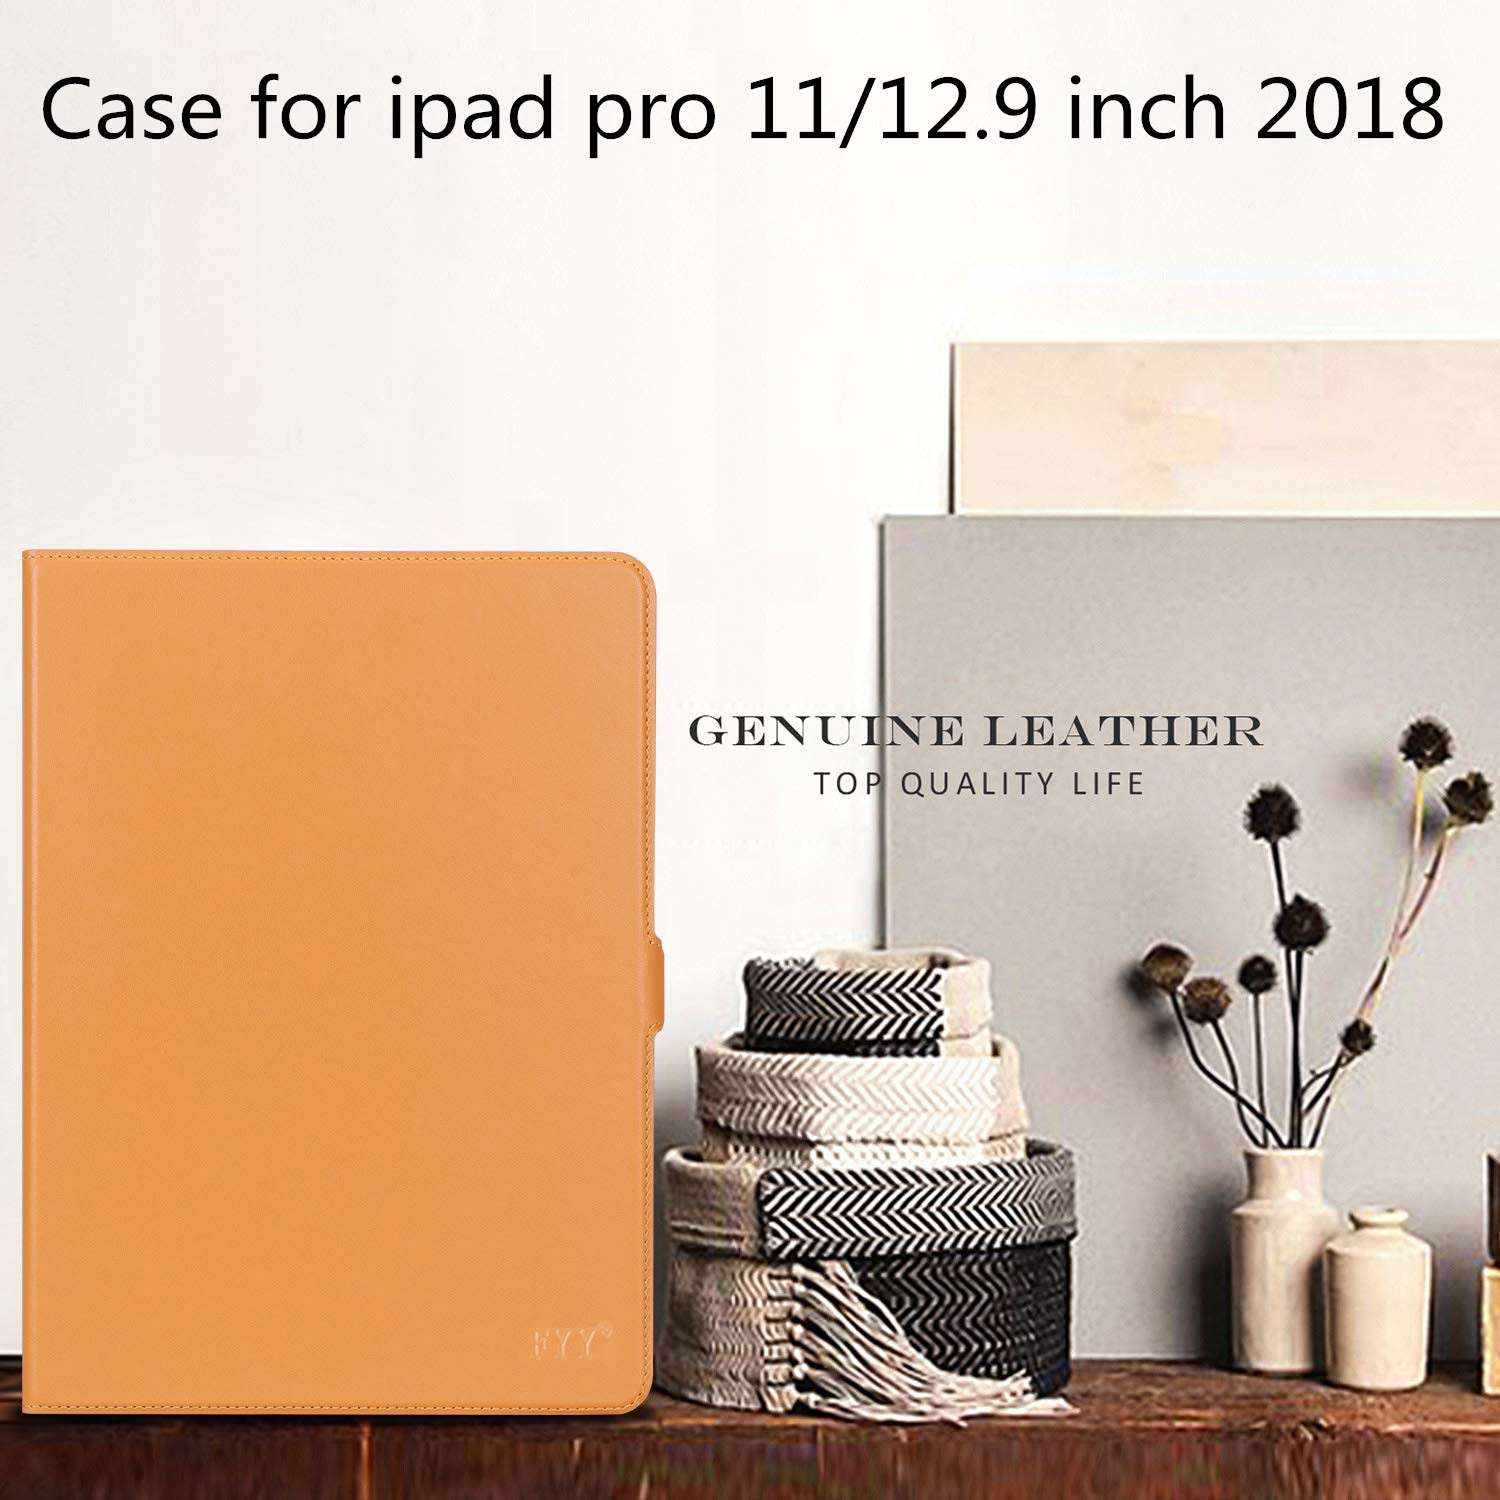 FYY cases for iPad pro 11/12.9 inch 2018